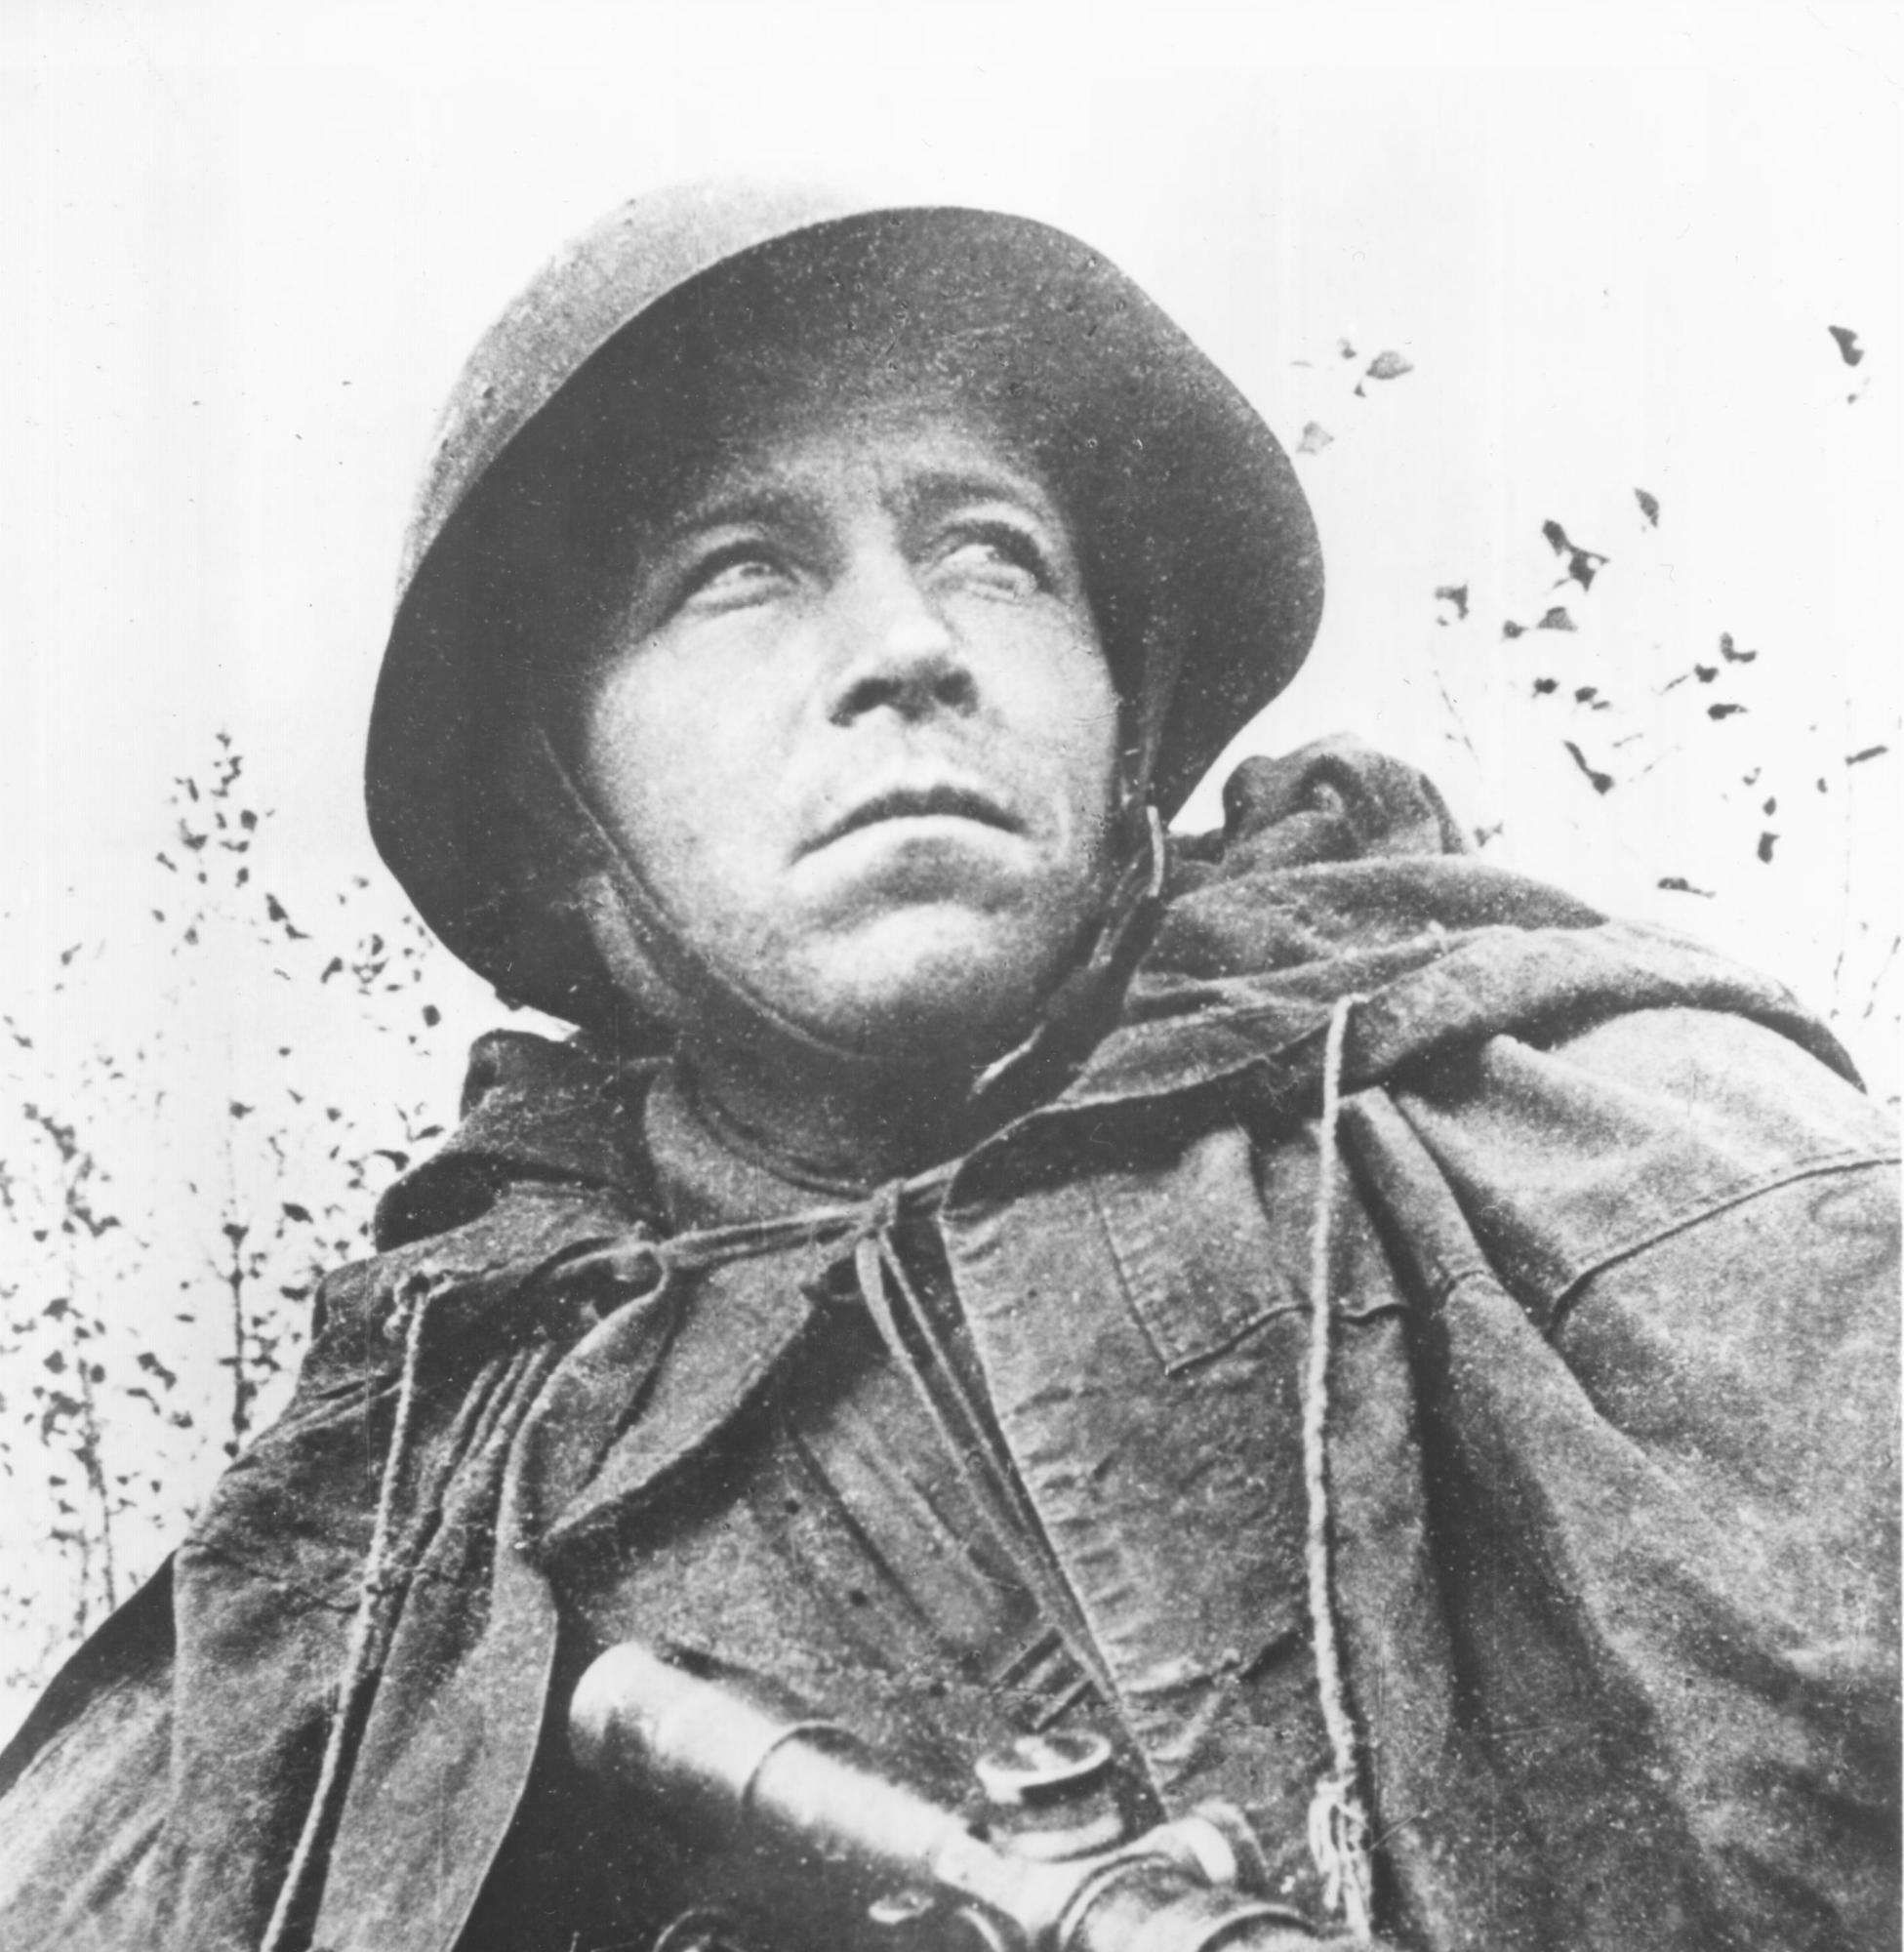 Russian soldier on the estern front